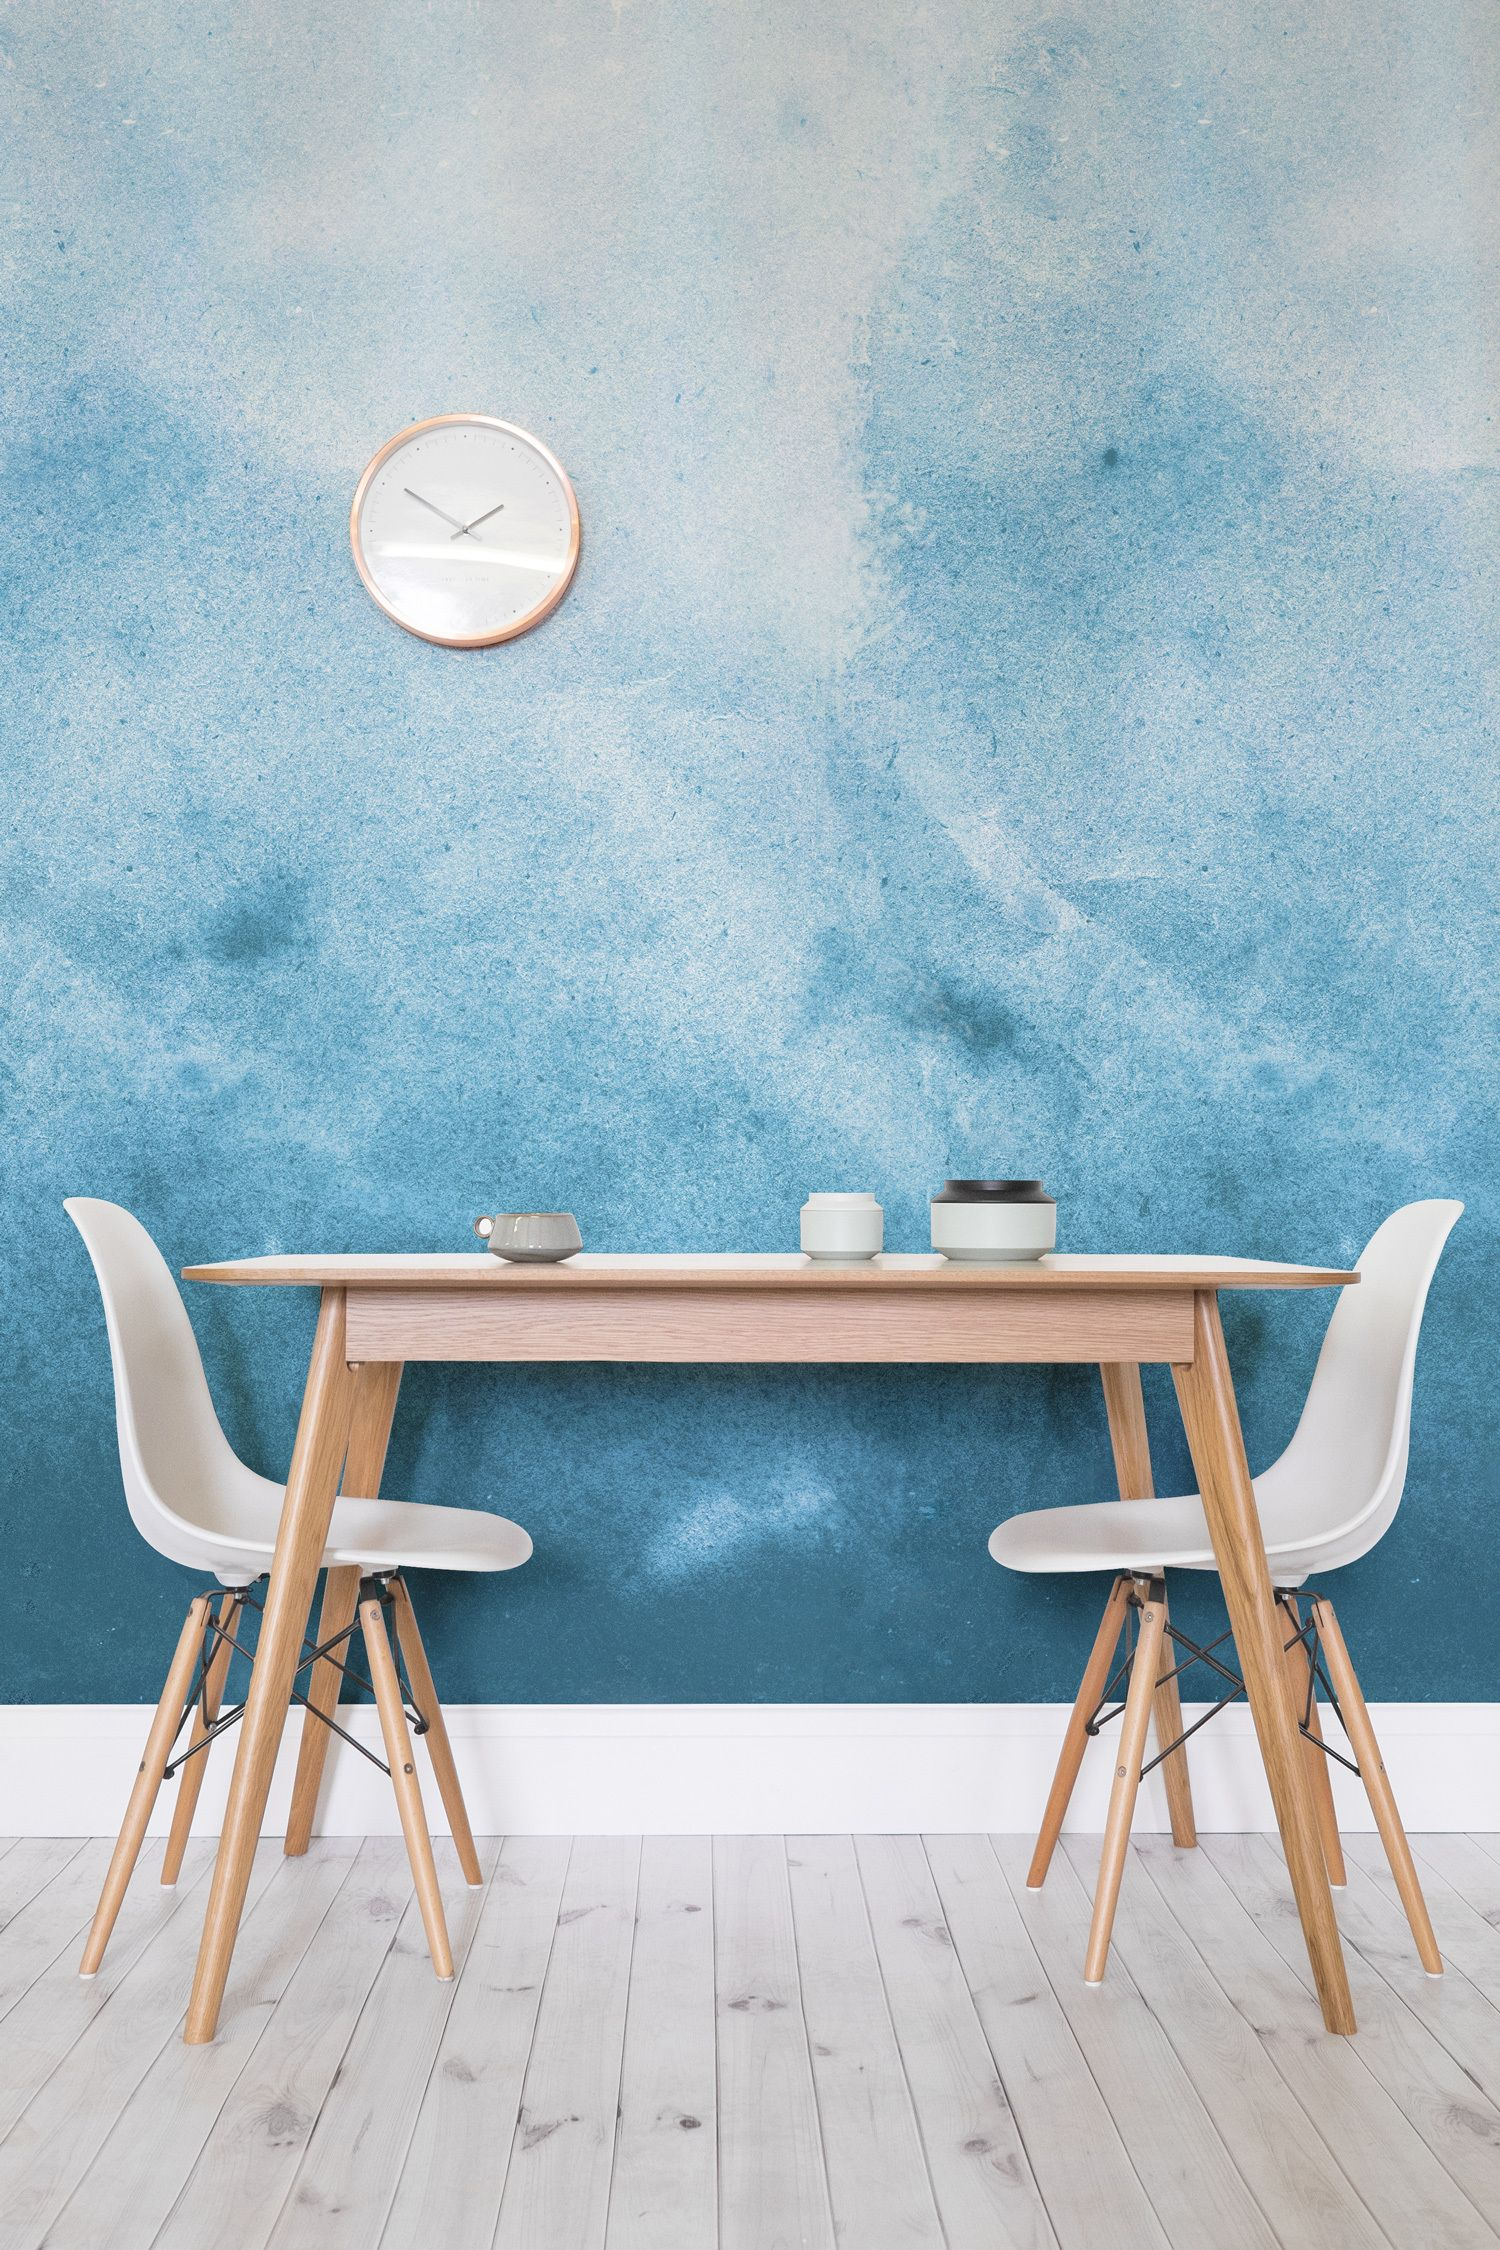 A modern take on blue painted walls. This blue watercolour wallpaper design brings depth and texture to your forgotten about dining room walls. & Blue Watercolor Wallpaper | Grunge Design | MuralsWallpaper | For ...